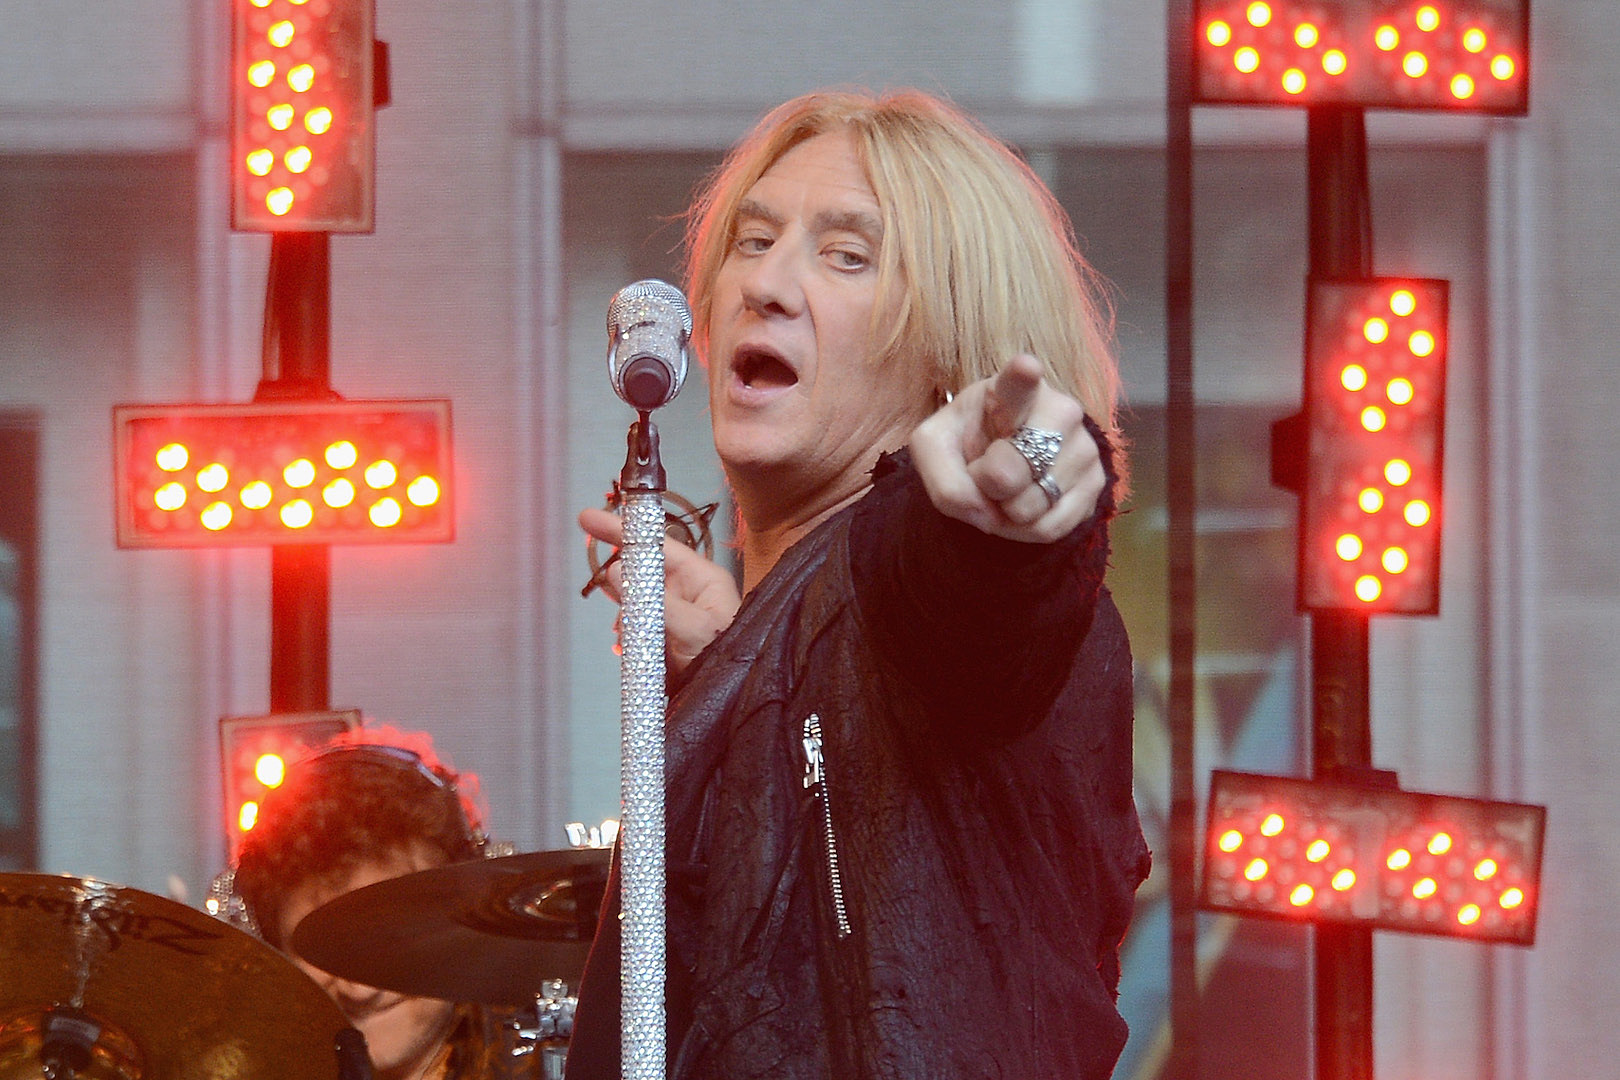 Def Leppard to Release First Ever Live Recording From Pete Willis Era